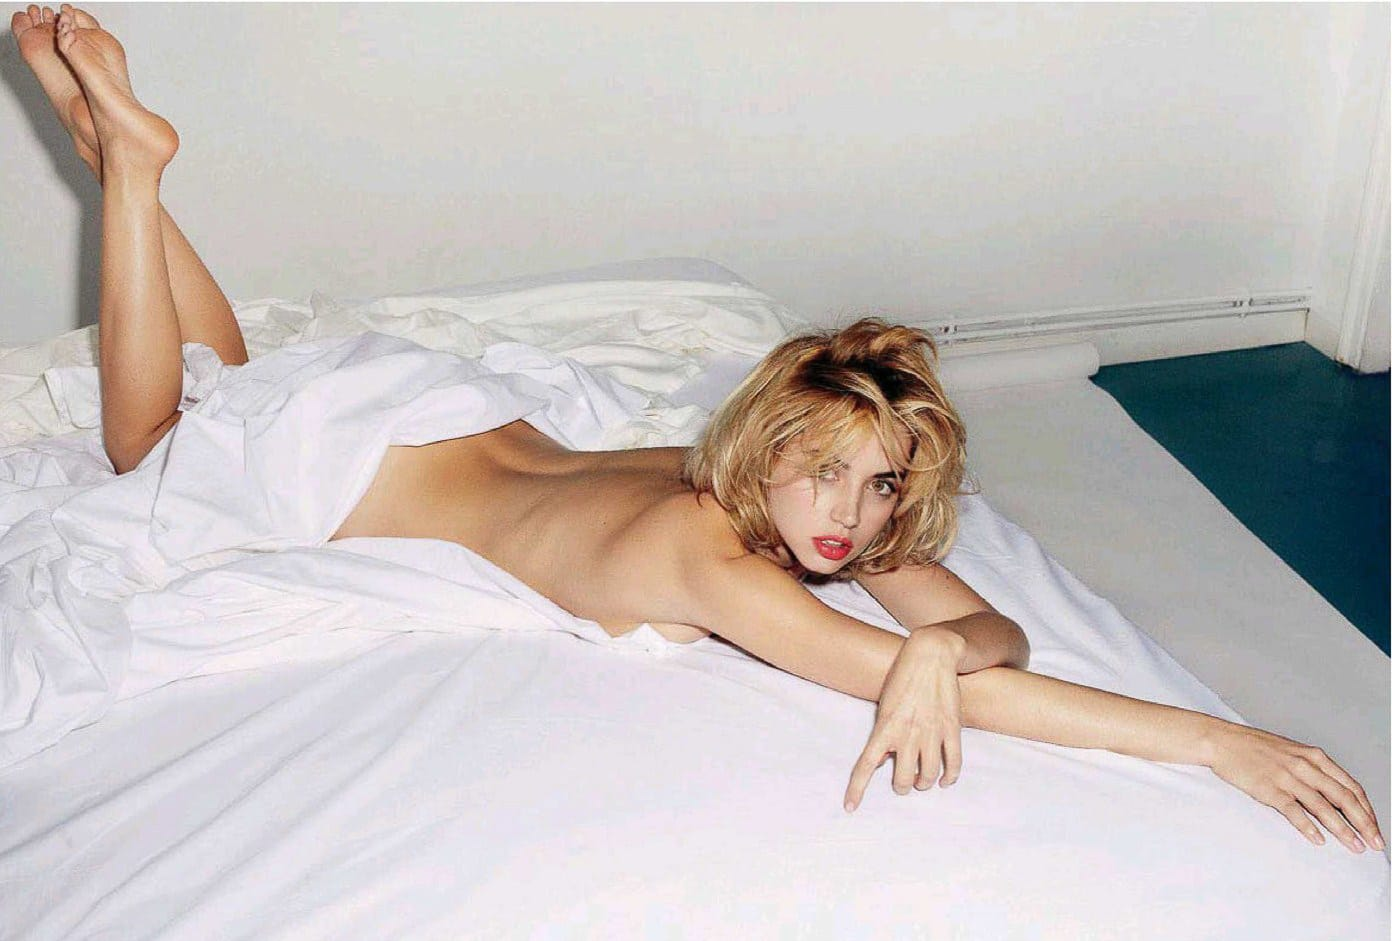 Ana de Armas hot pics undressed (3)